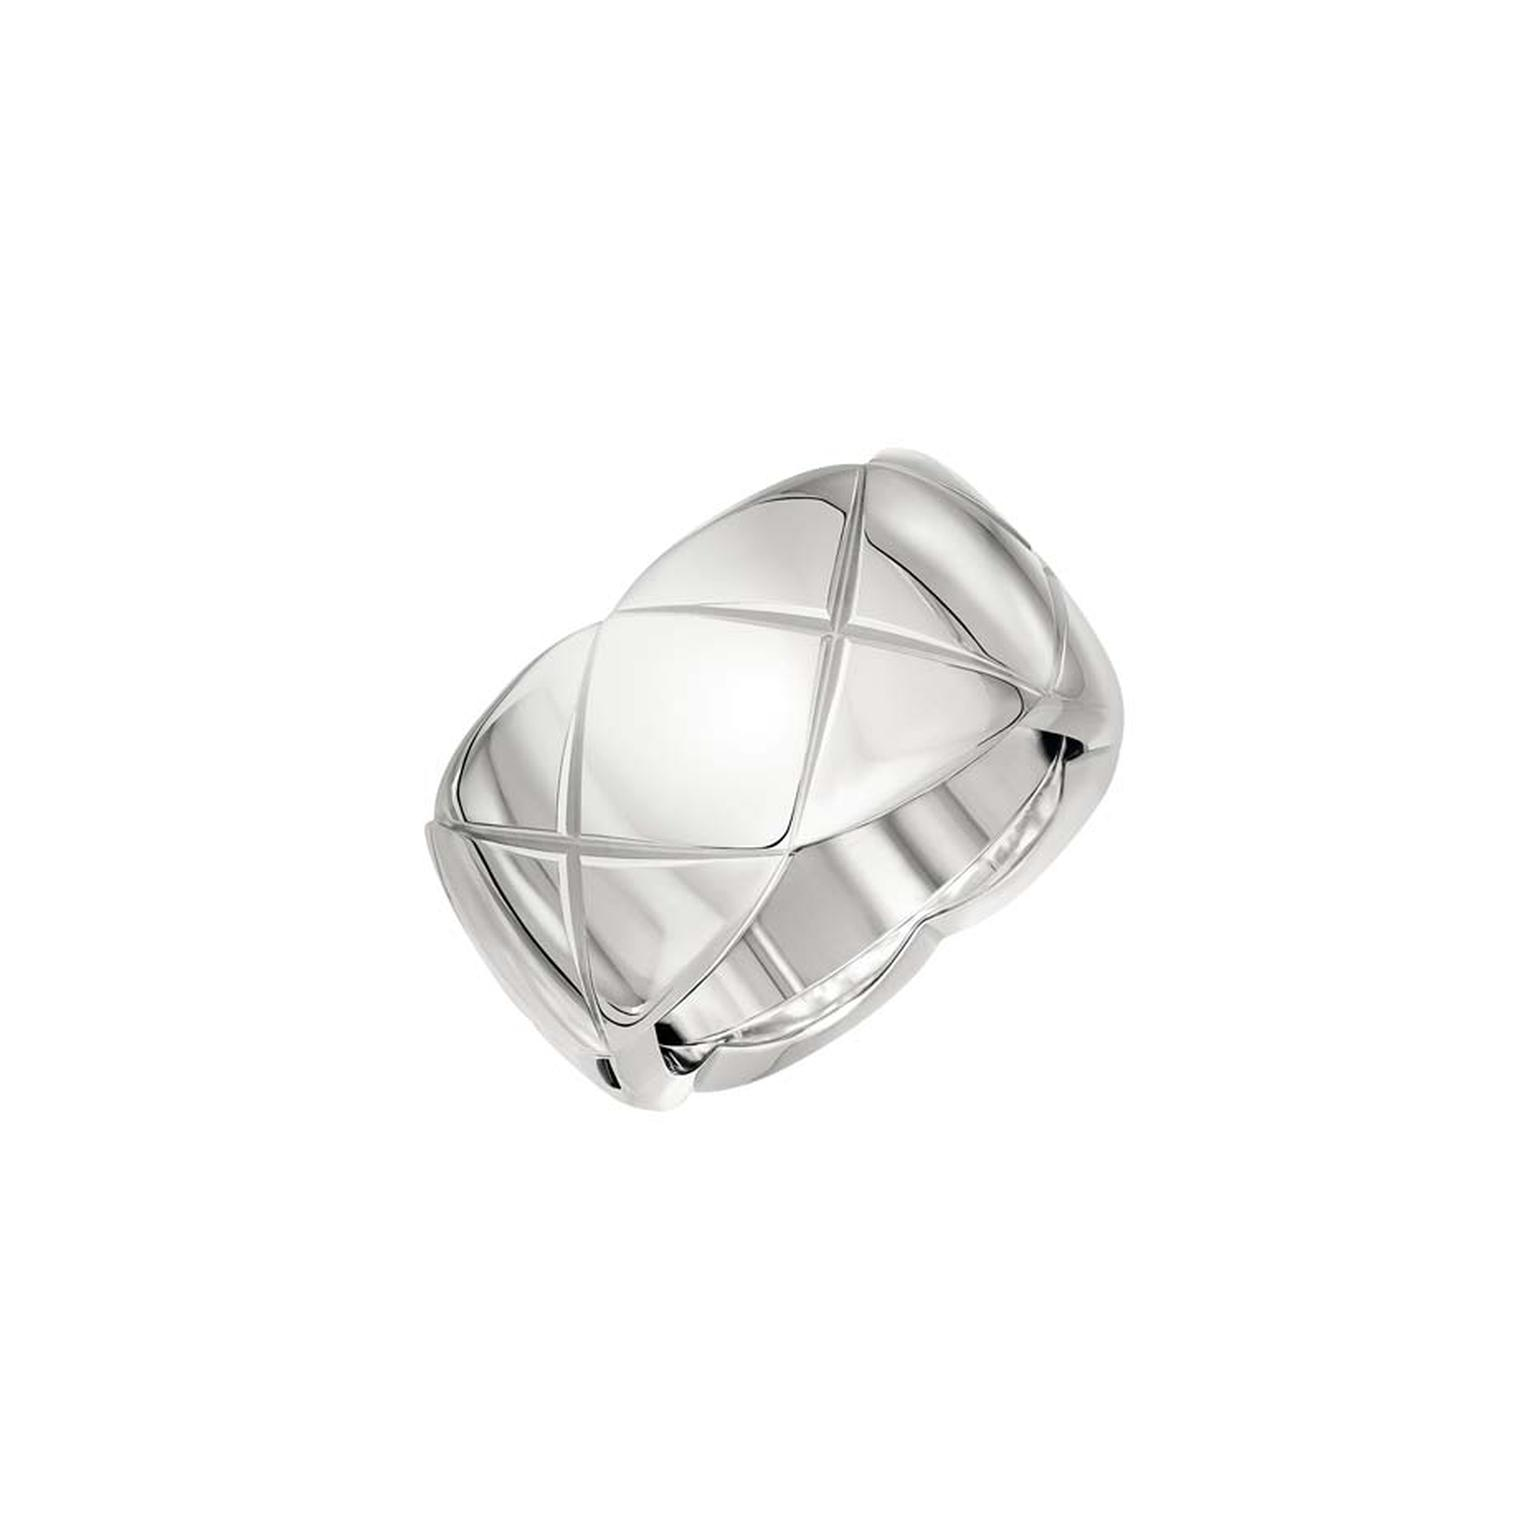 Chanel Coco Crush medium 18ct white gold ring